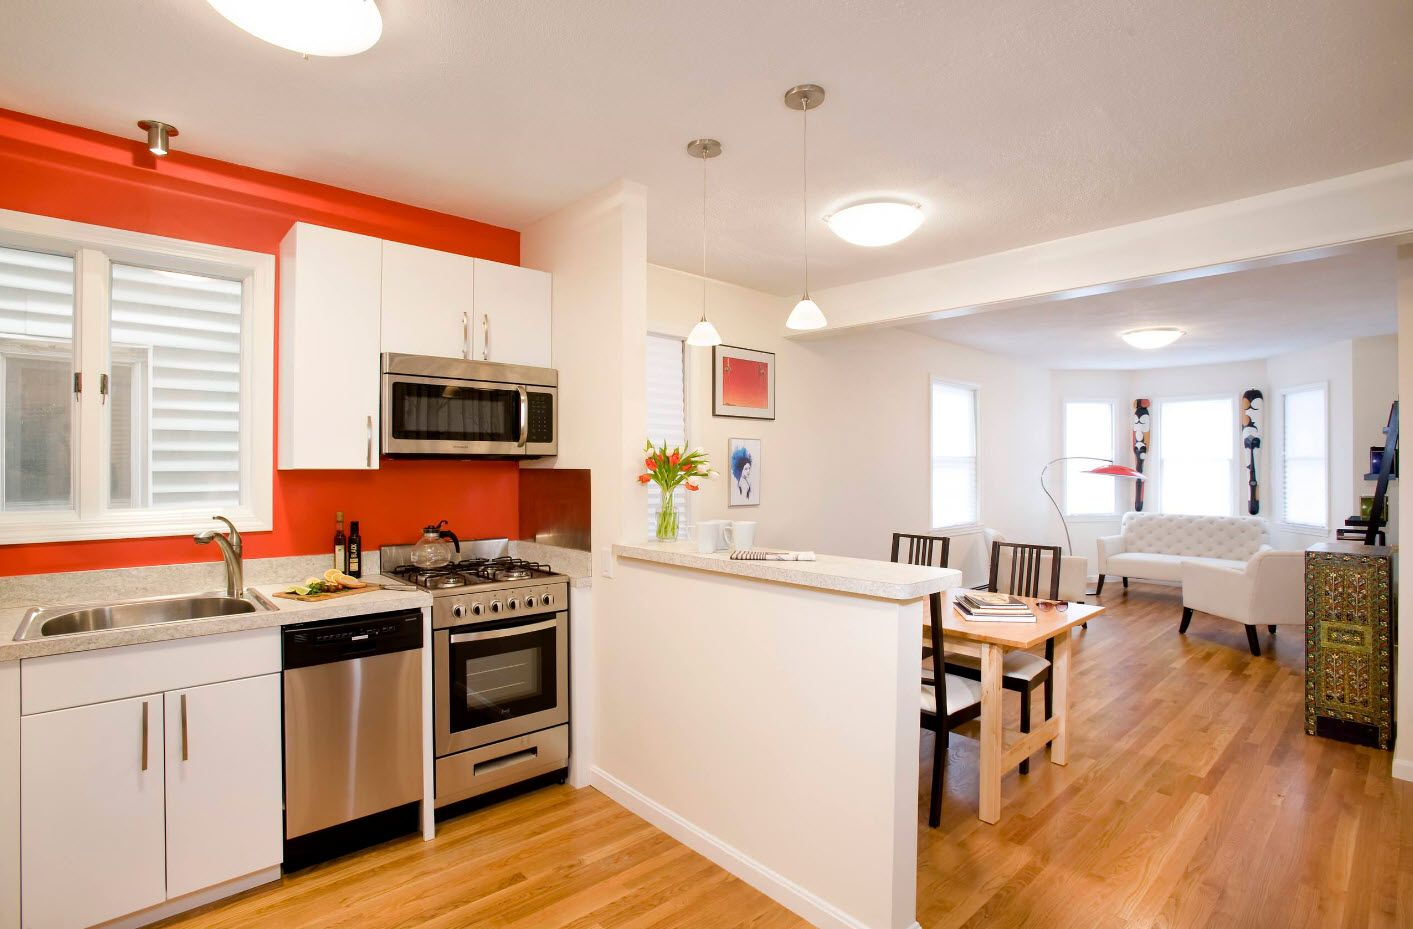 One Bedroom Apartment Design Trends with Photos. Zoning is the Forte of modern interiors